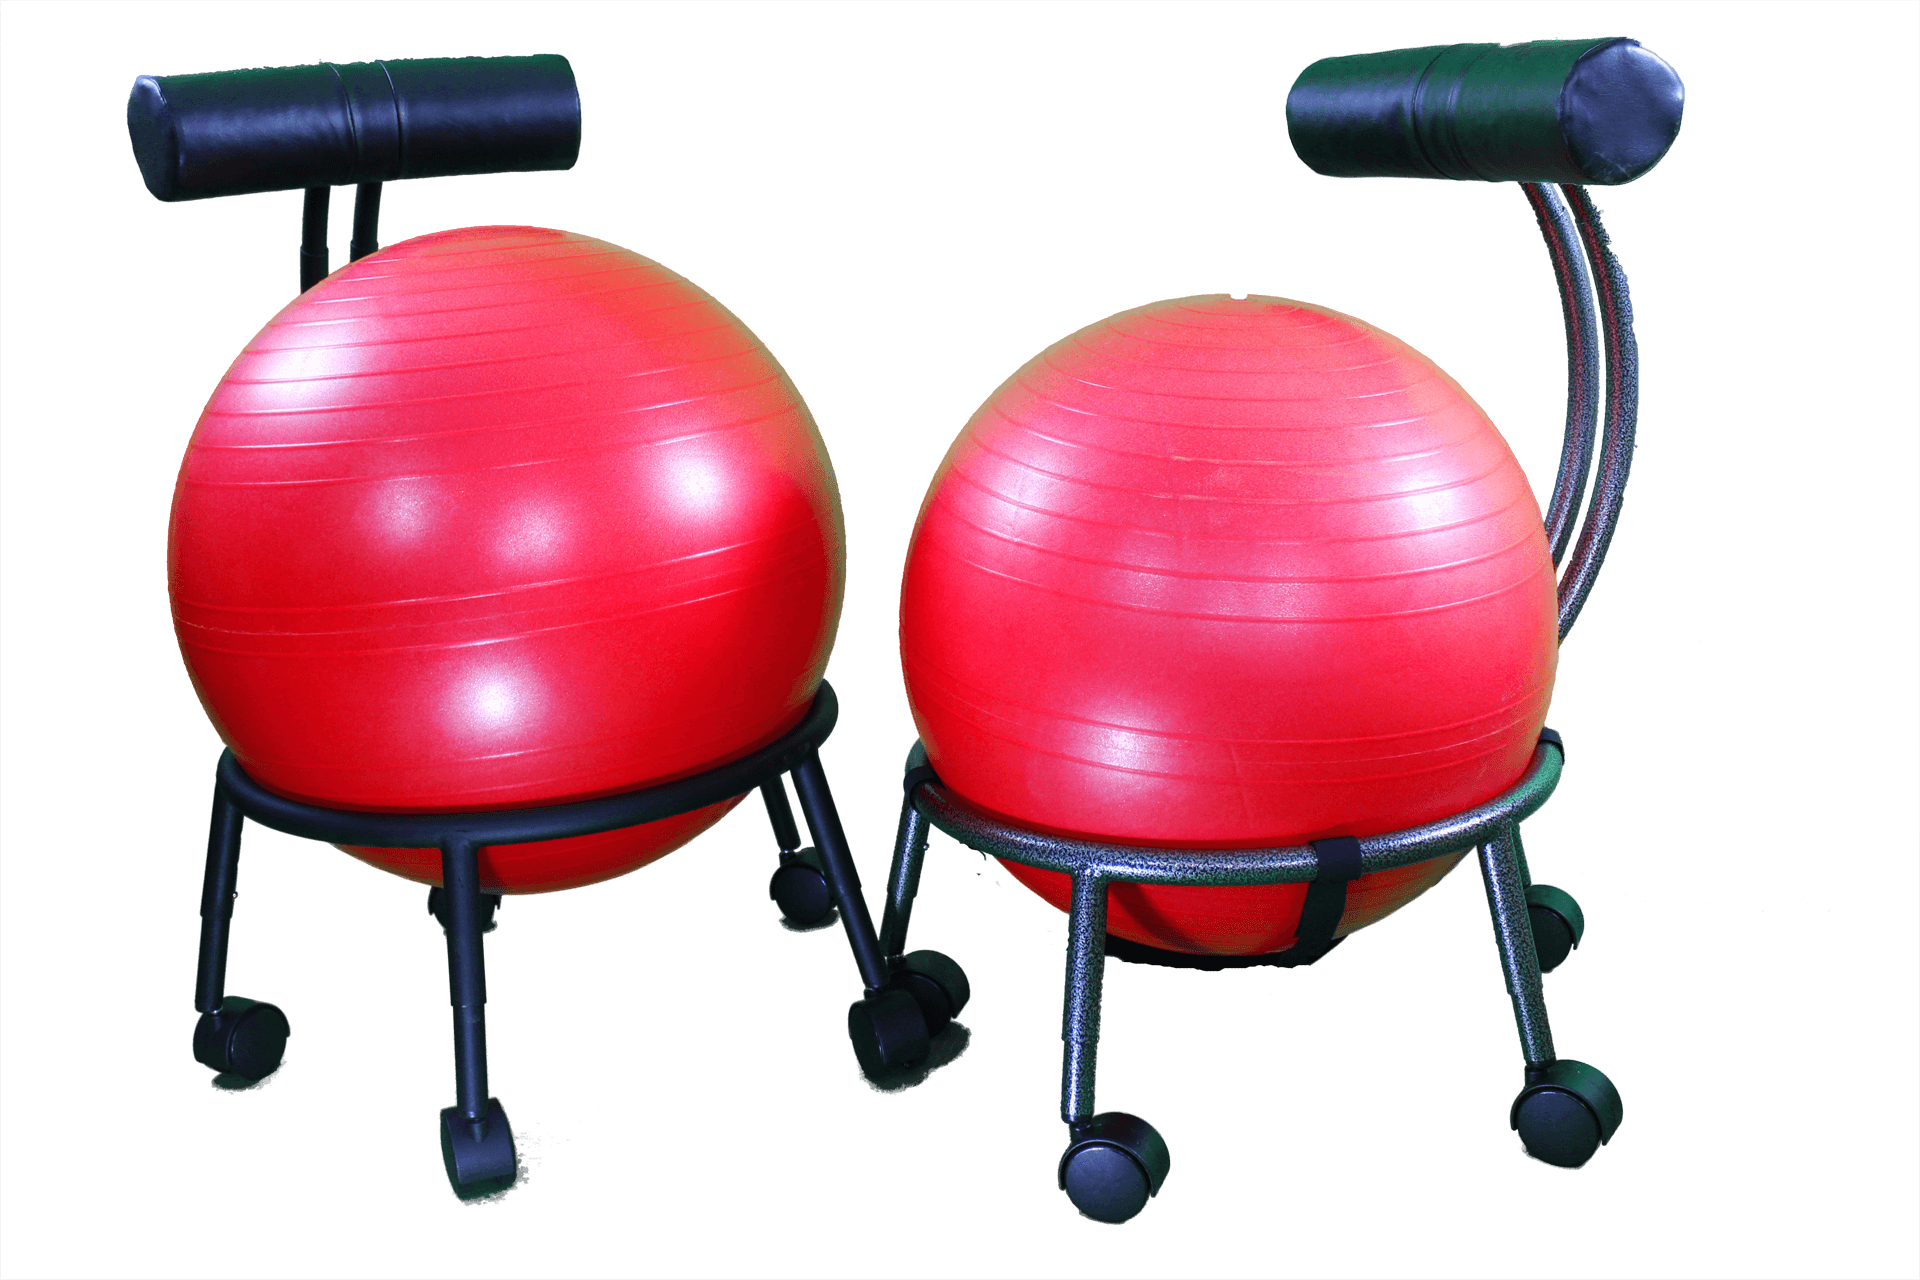 Therapeutic Ball Seat-Helps Build a Healthier Back Align the Spine Relieve Pain ...  sc 1 st  Platinum Health Group & Therapeutic Ball Seat-Helps Build a Healthier Back Align the Spine ...